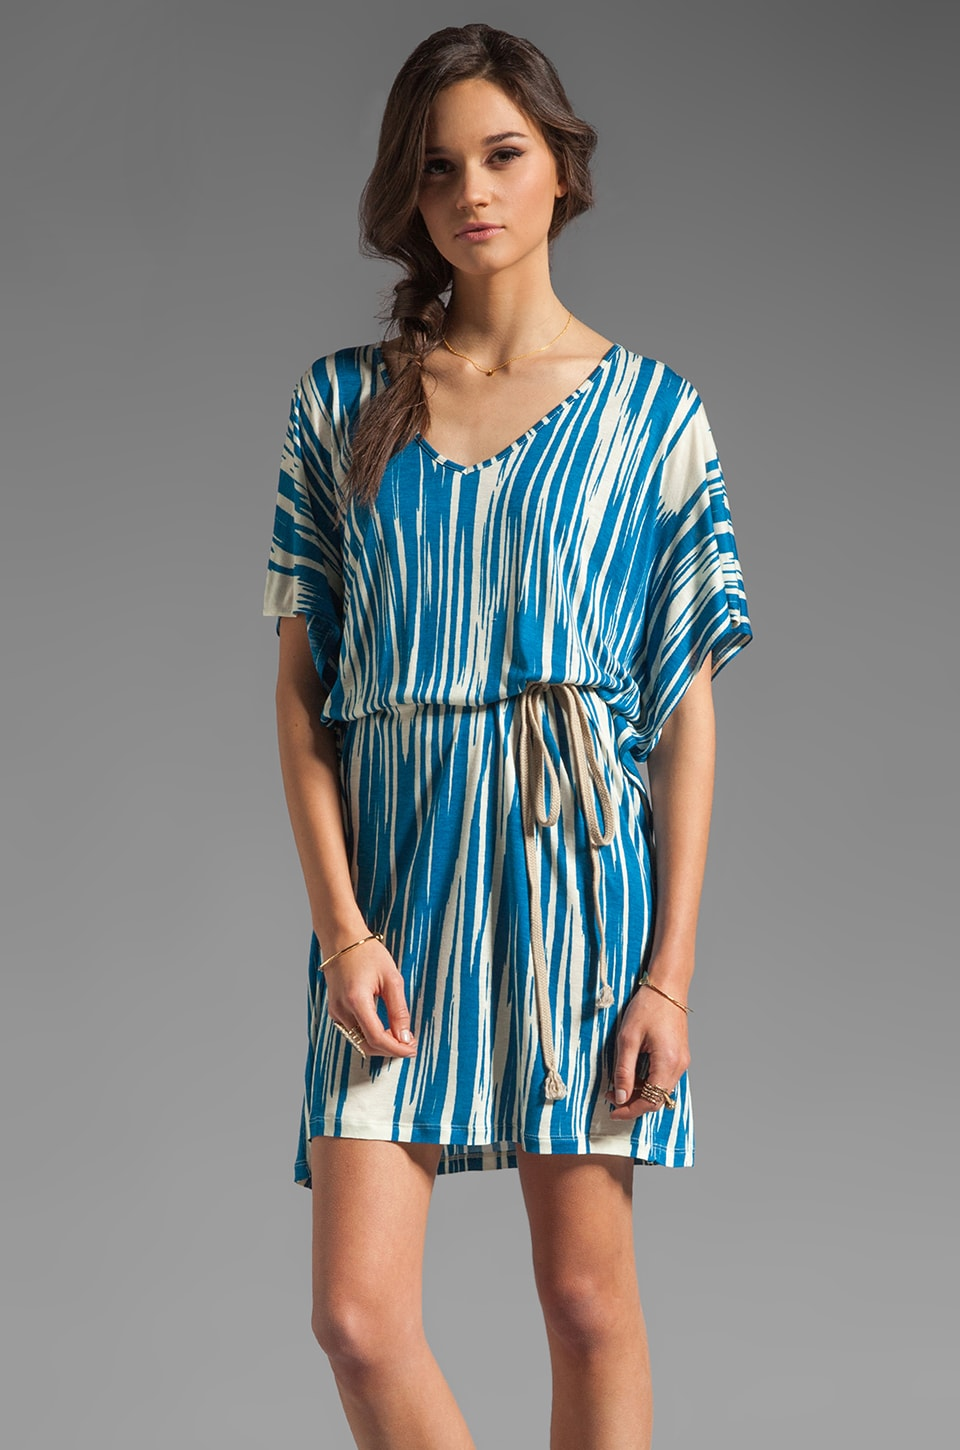 Velvet by Graham & Spencer Key West Nahlah Dress in Atlantis